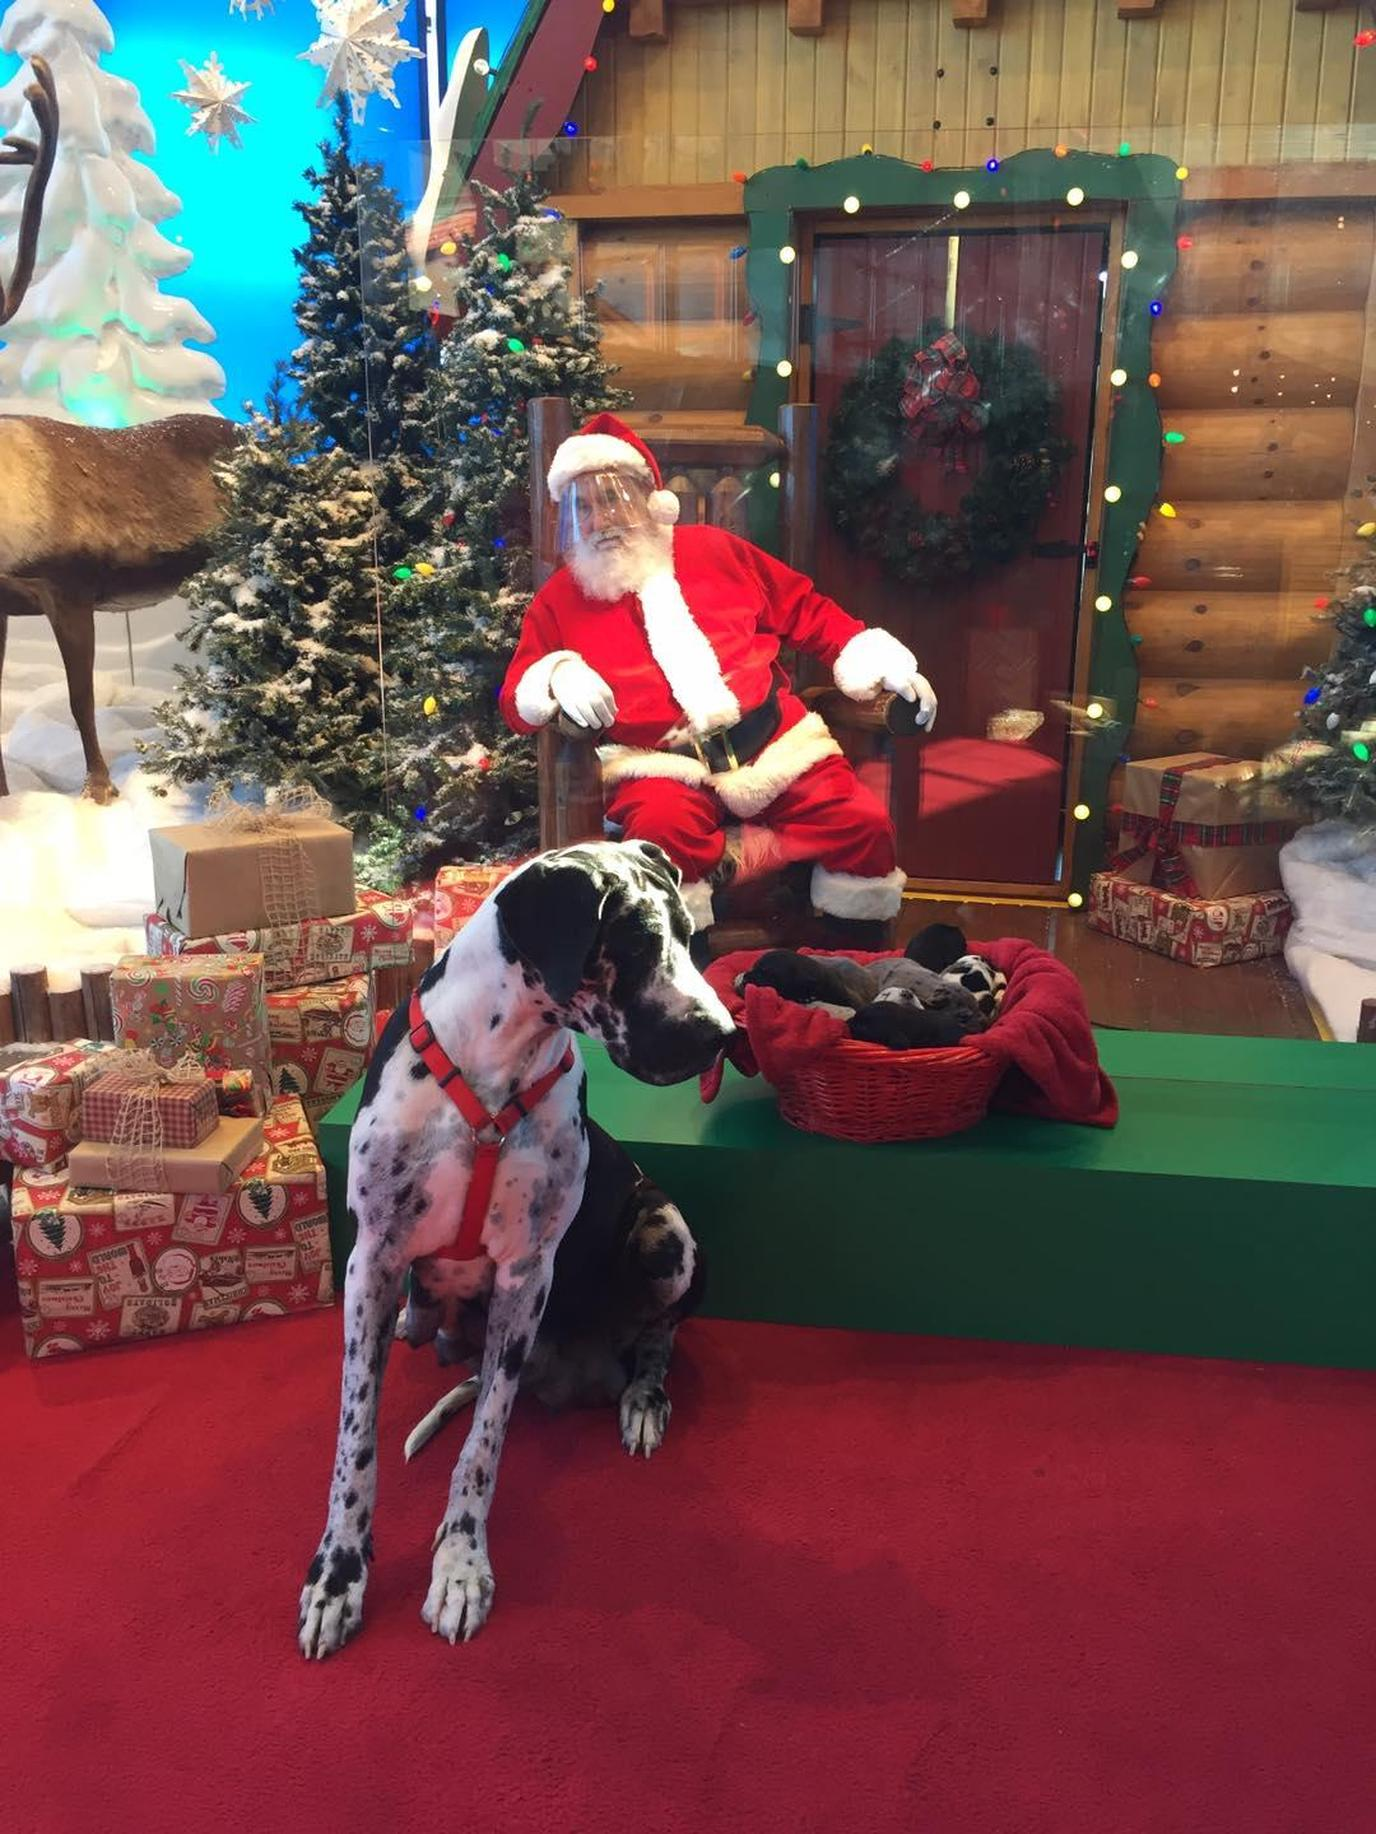 Great Dane poses with puppies in front of Bass Pro Shops Santa with face shield in 2020.